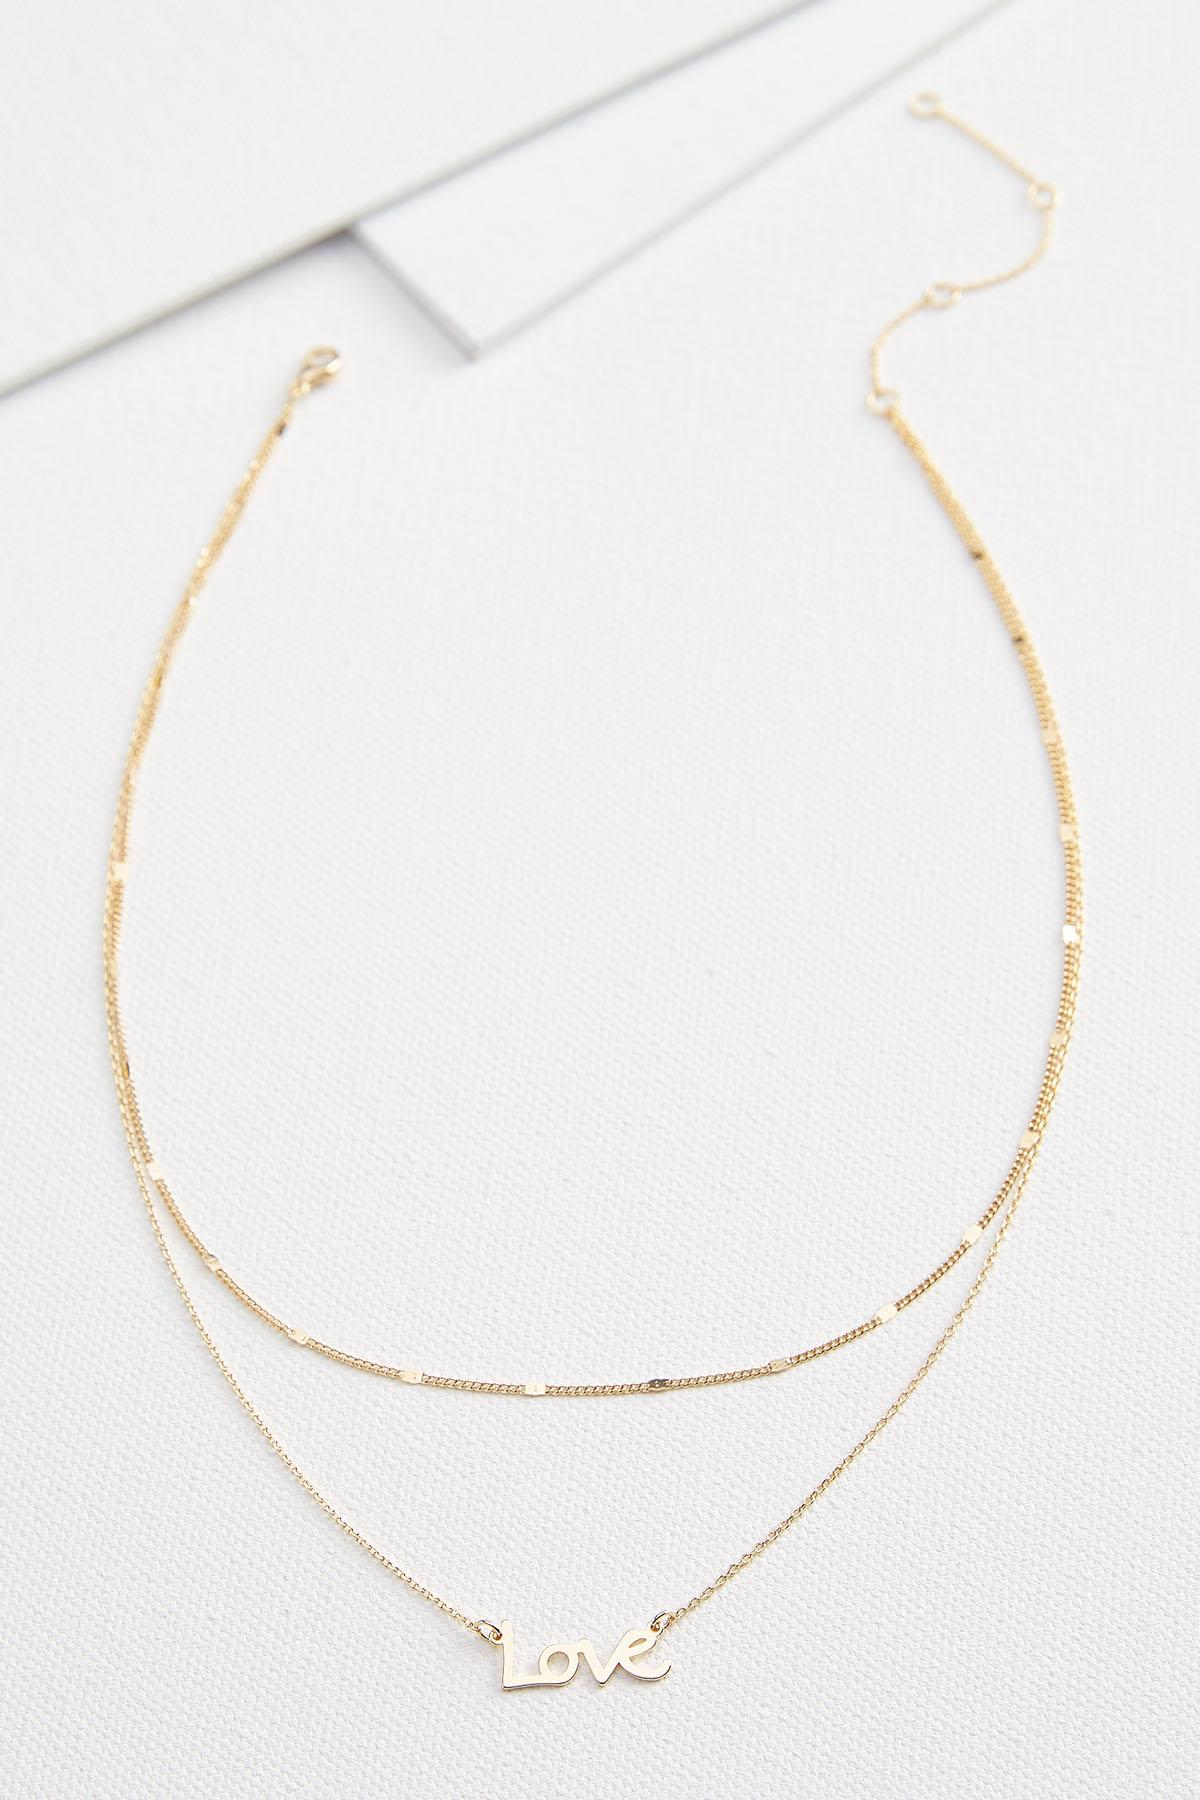 Love Layered Necklace